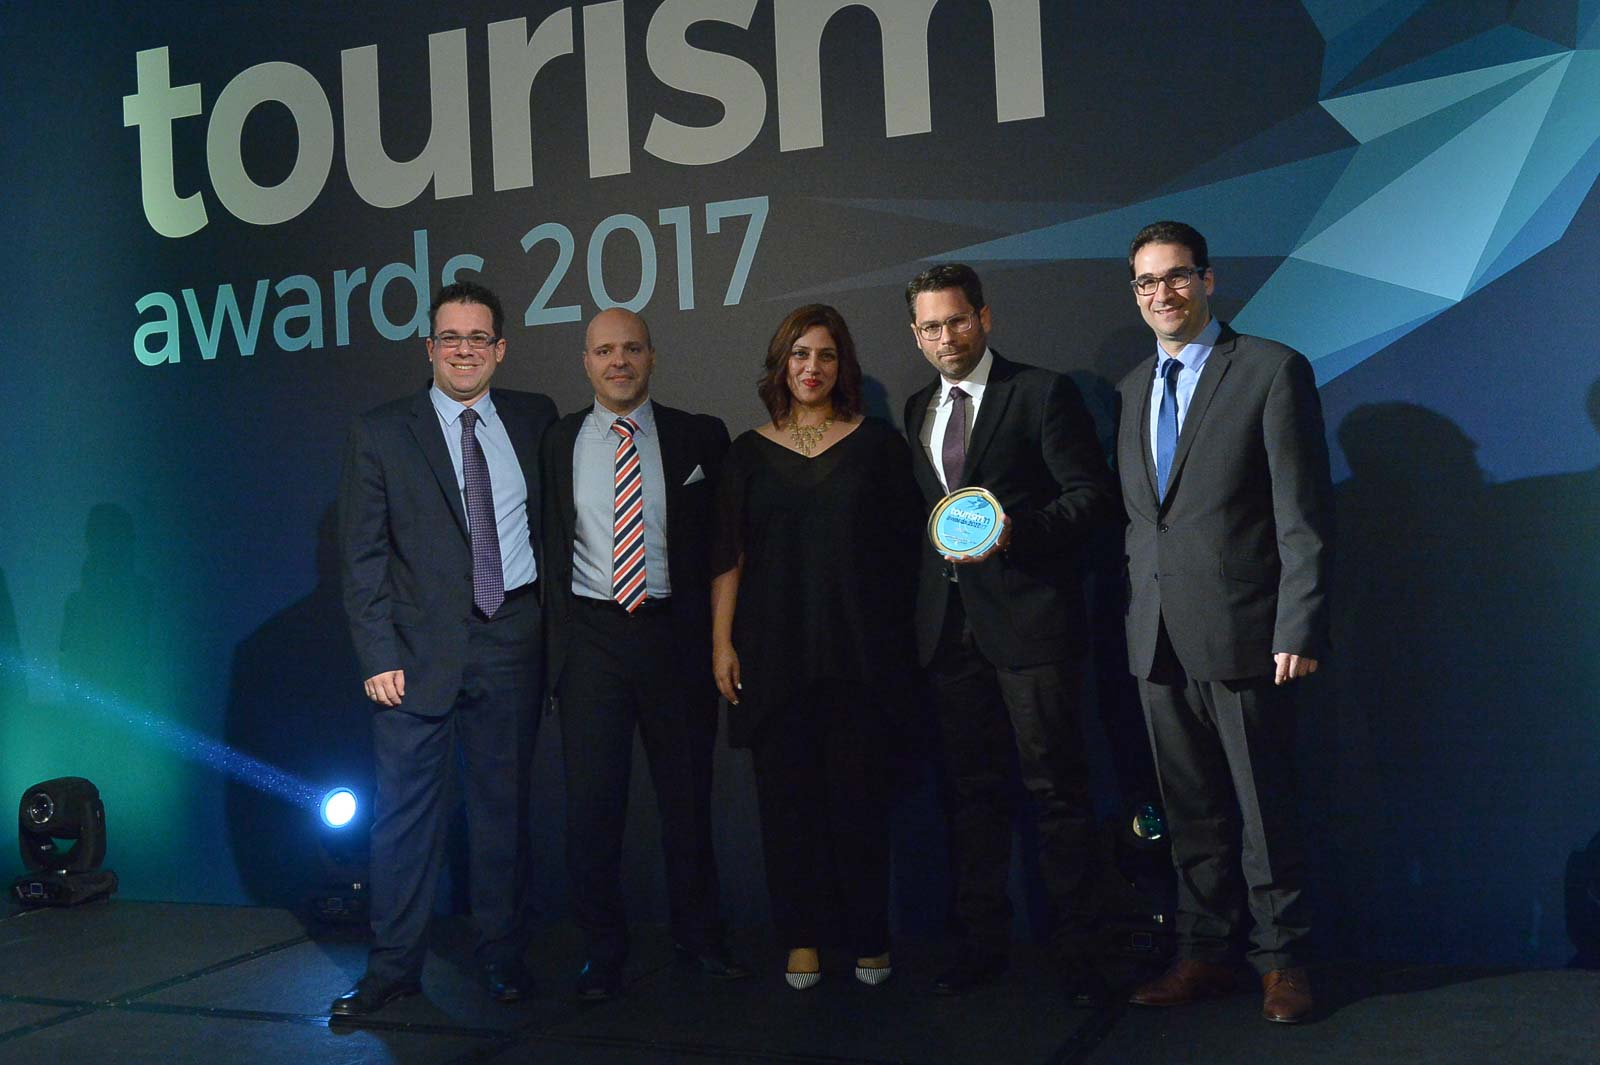 Tourism Awards 2017 - Aqua Vista Hotels